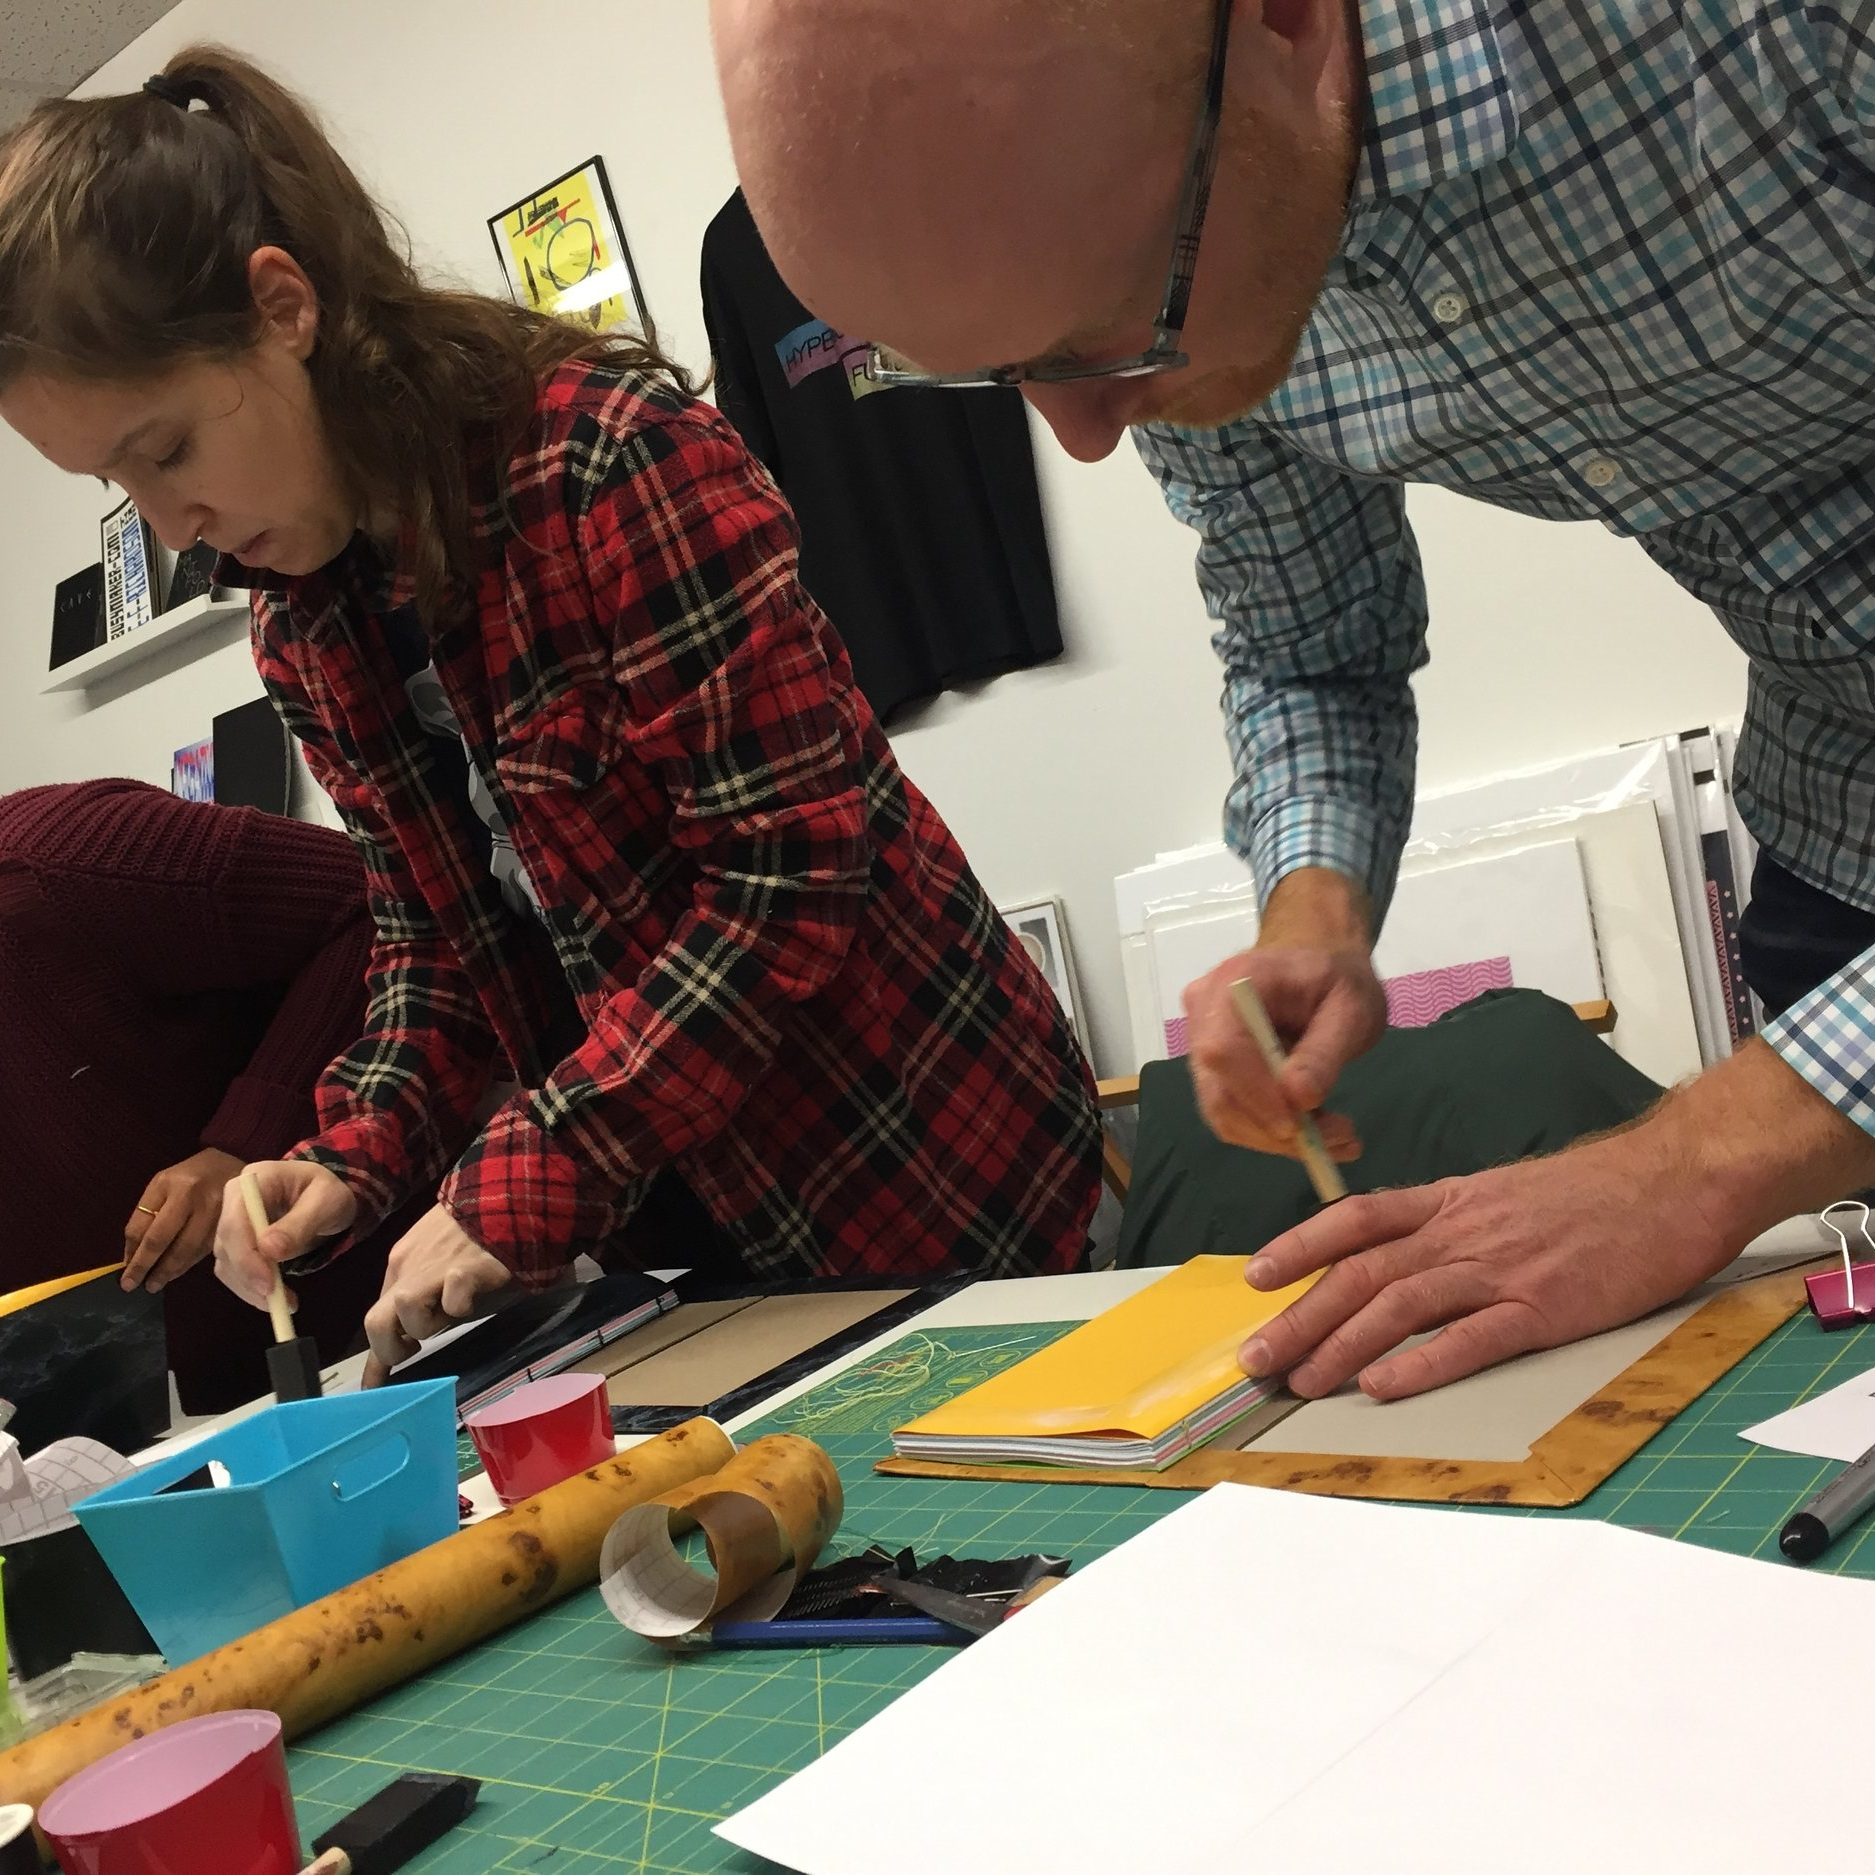 Make Your Own Notebook - Learn the art of simple bookbinding and create your very own notebook. Keep them for yourself or give away as gifts. A great introduction to the bookbinding process.